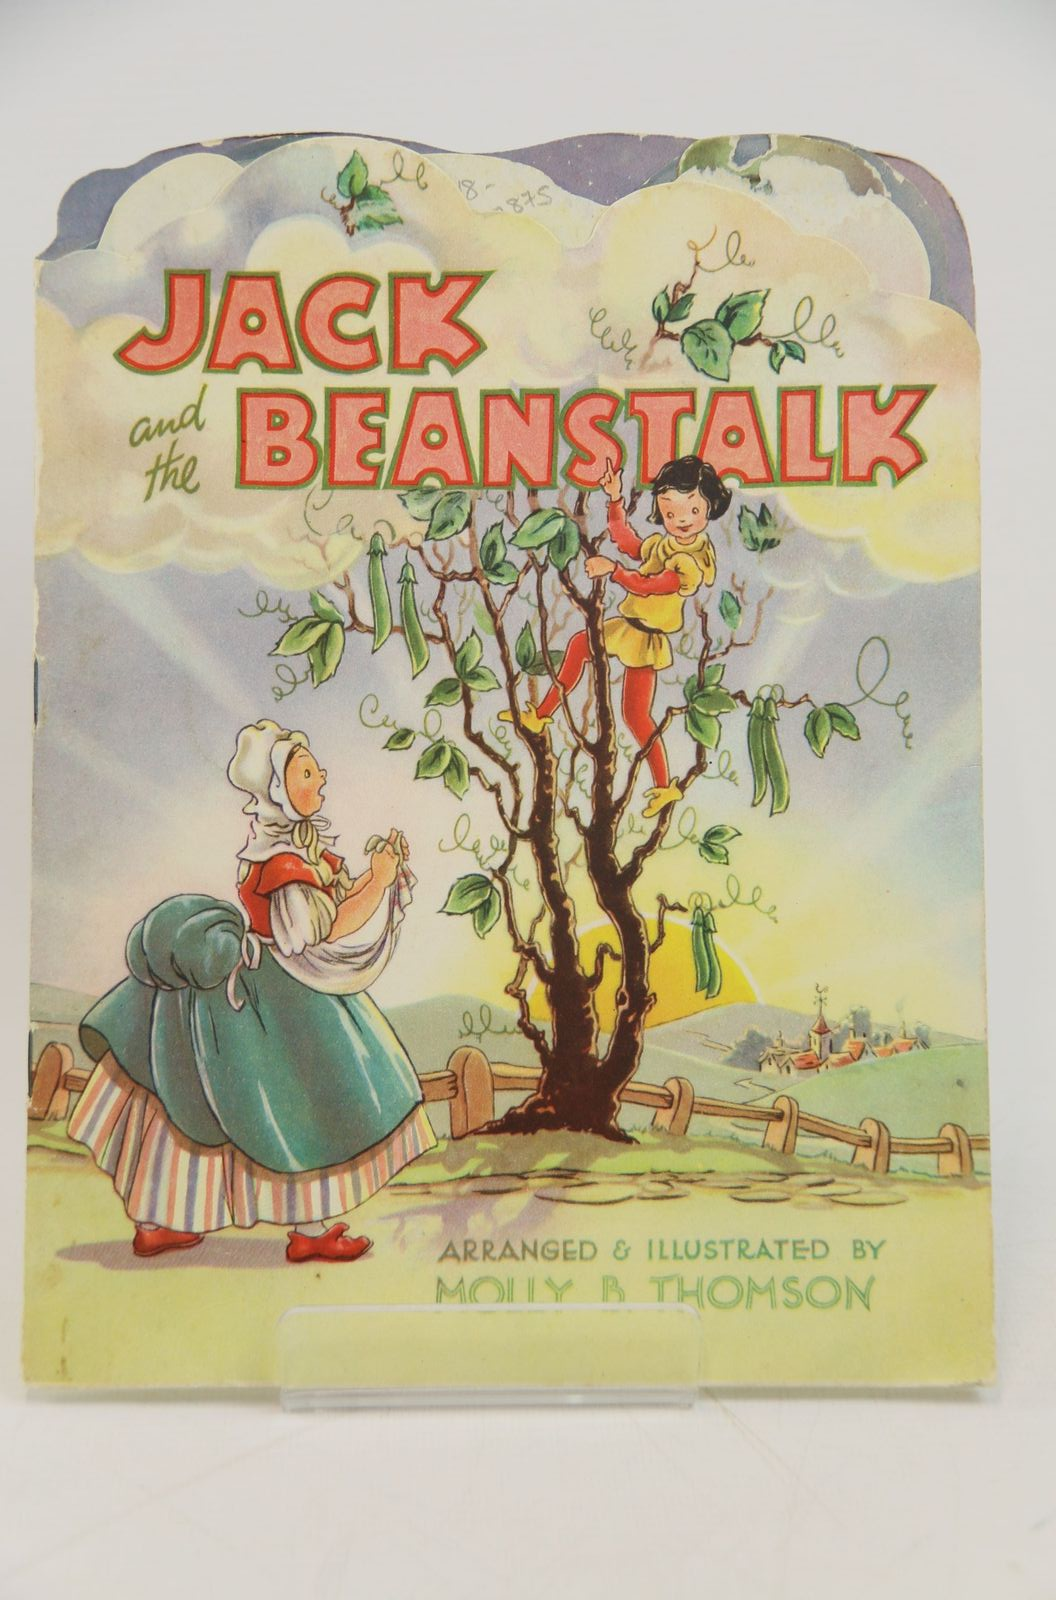 Photo of JACK AND THE BEANSTALK written by Thomson, Molly B. illustrated by Thomson, Molly B. published by Collins Clear-Type Press (STOCK CODE: 1317875)  for sale by Stella & Rose's Books